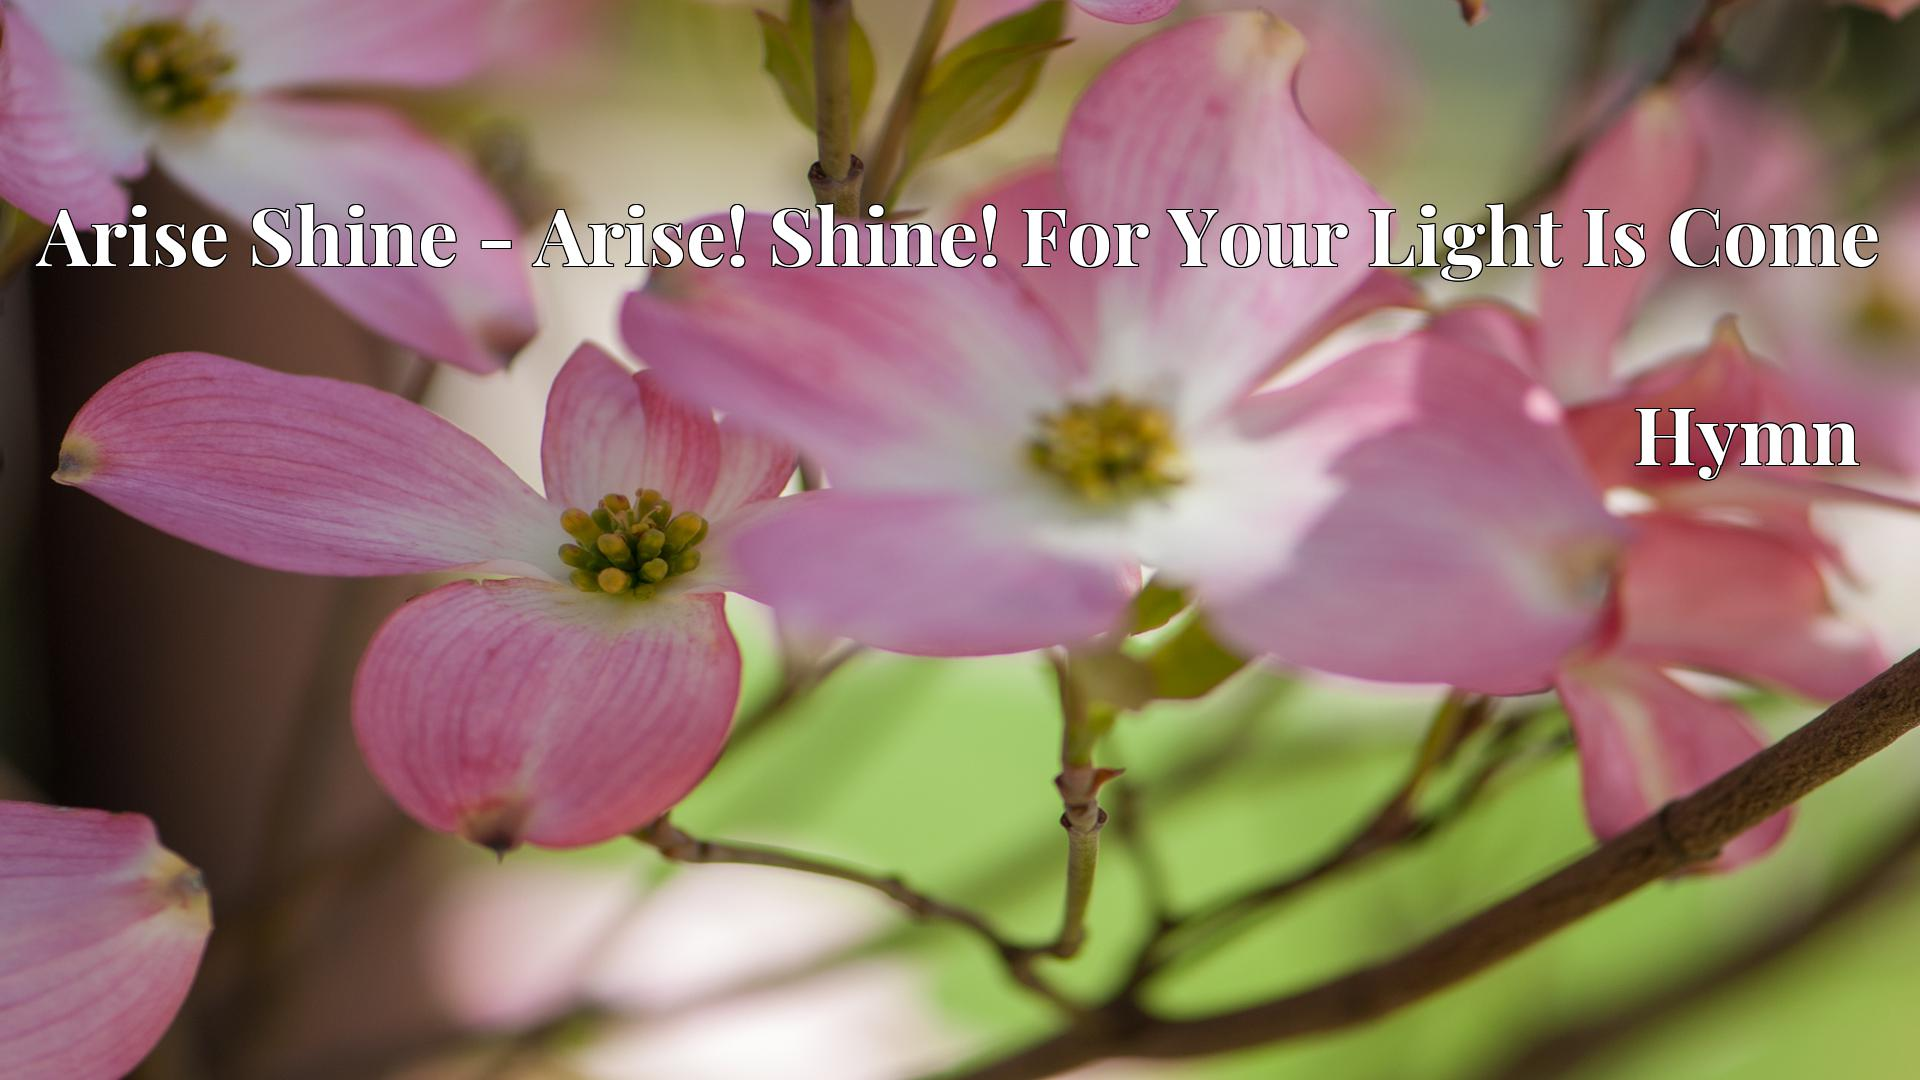 Arise Shine - Arise! Shine! For Your Light Is Come - Hymn